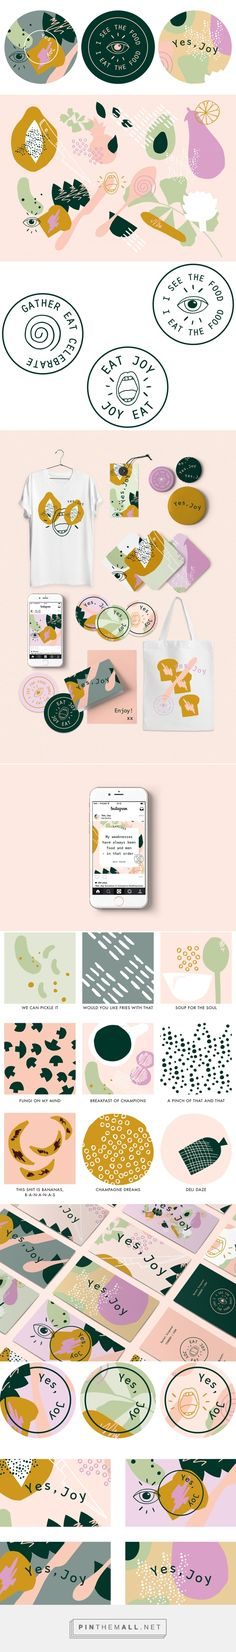 Yes, Joy Food Blogger and Caterer Branding by Lila Theodoros | Fivestar Branding Agency – Design and Branding Agency & Curated Inspiration Gallery